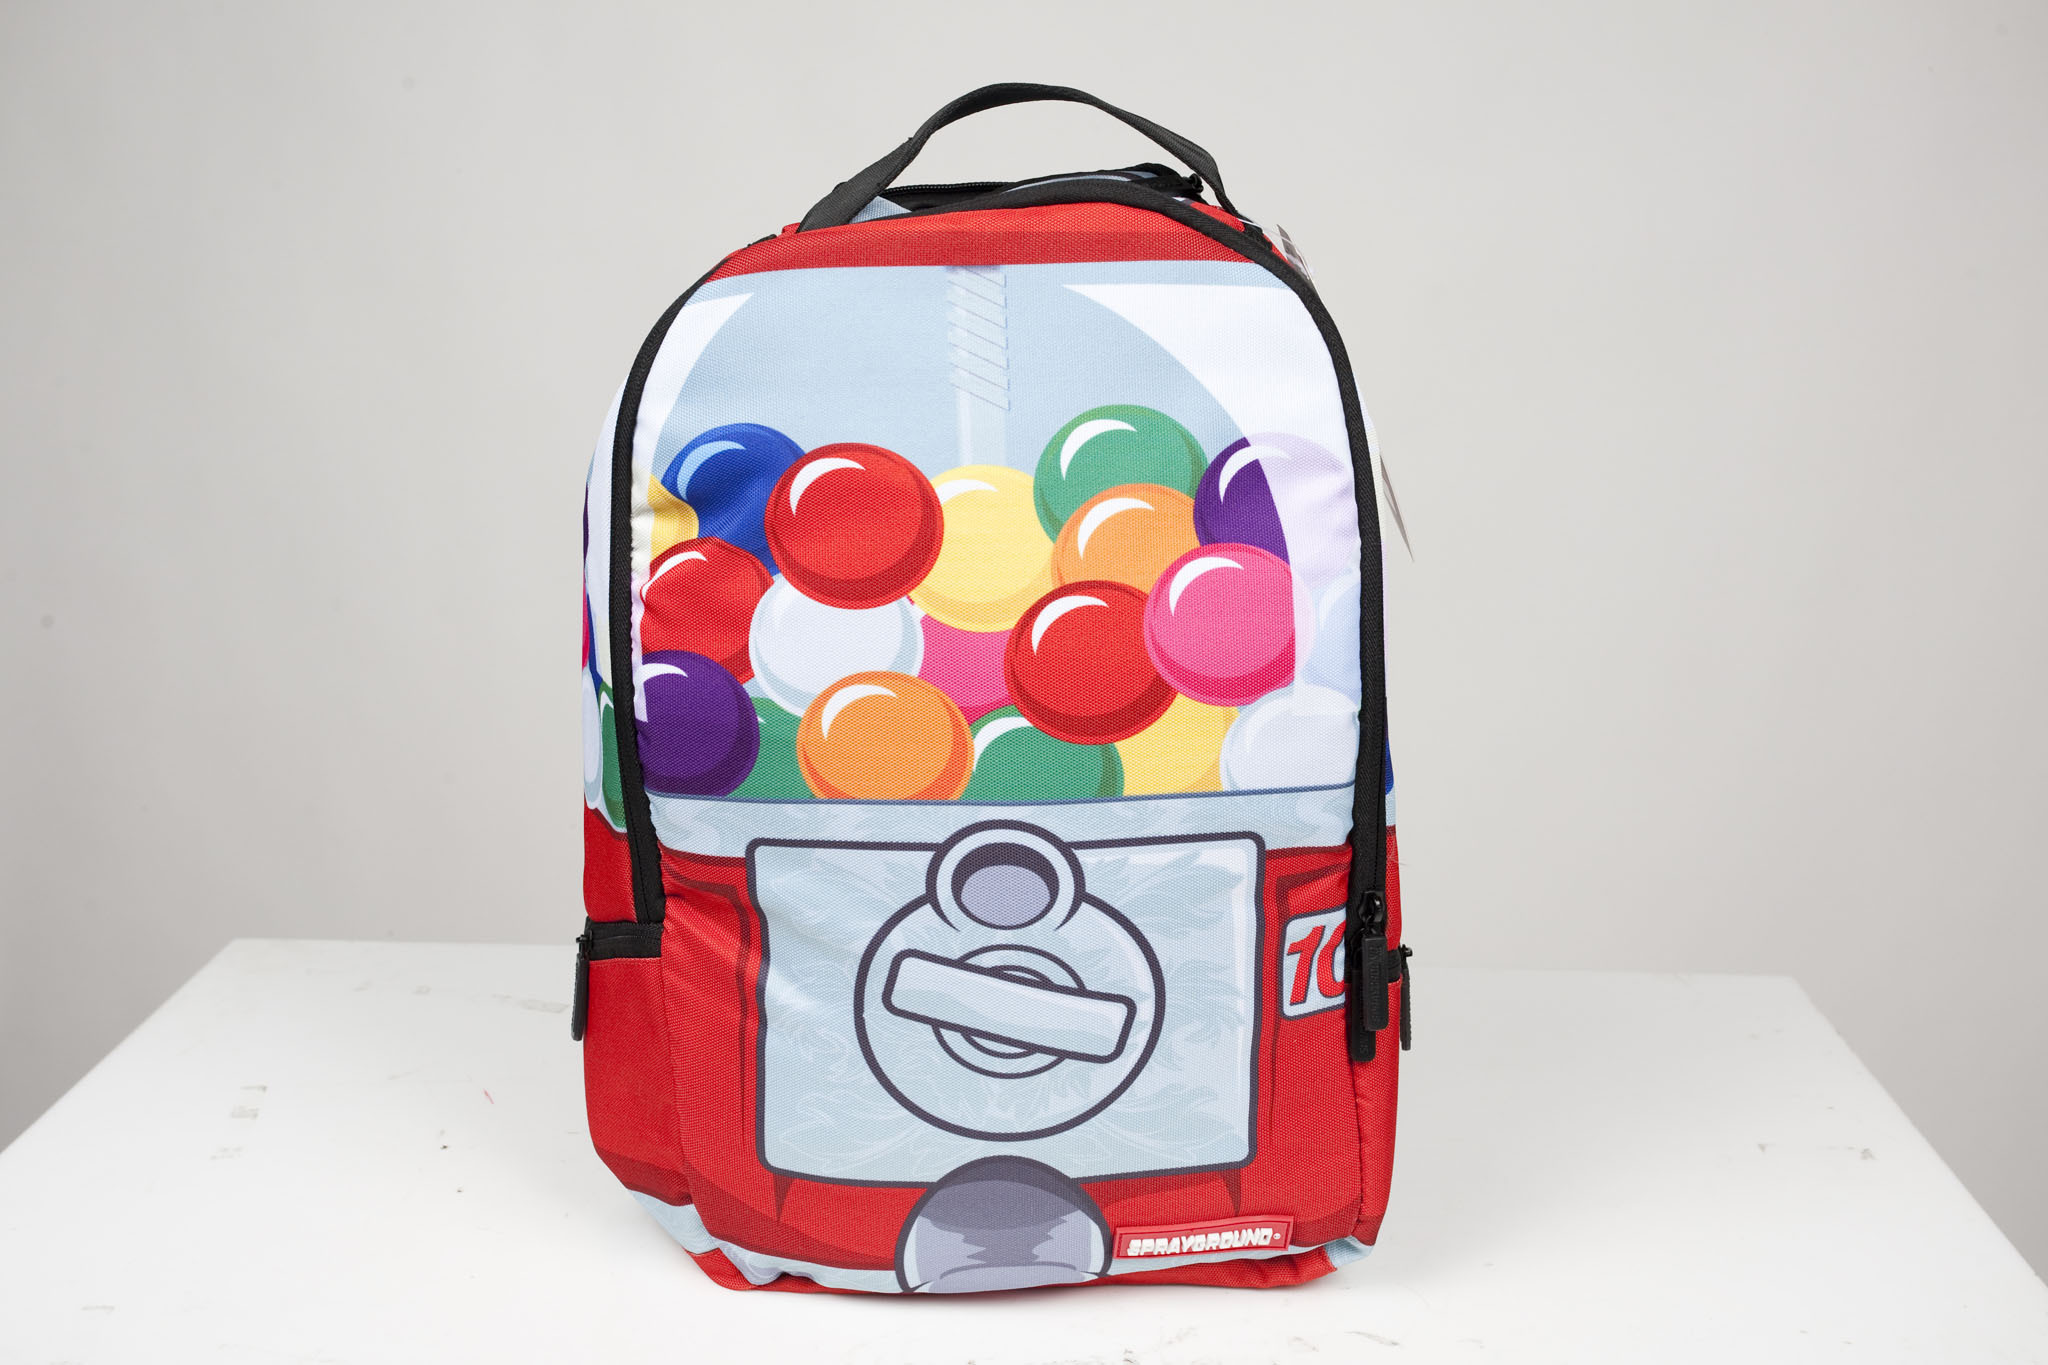 Back-to-school supplies: The best schoolbags for kids (2012)